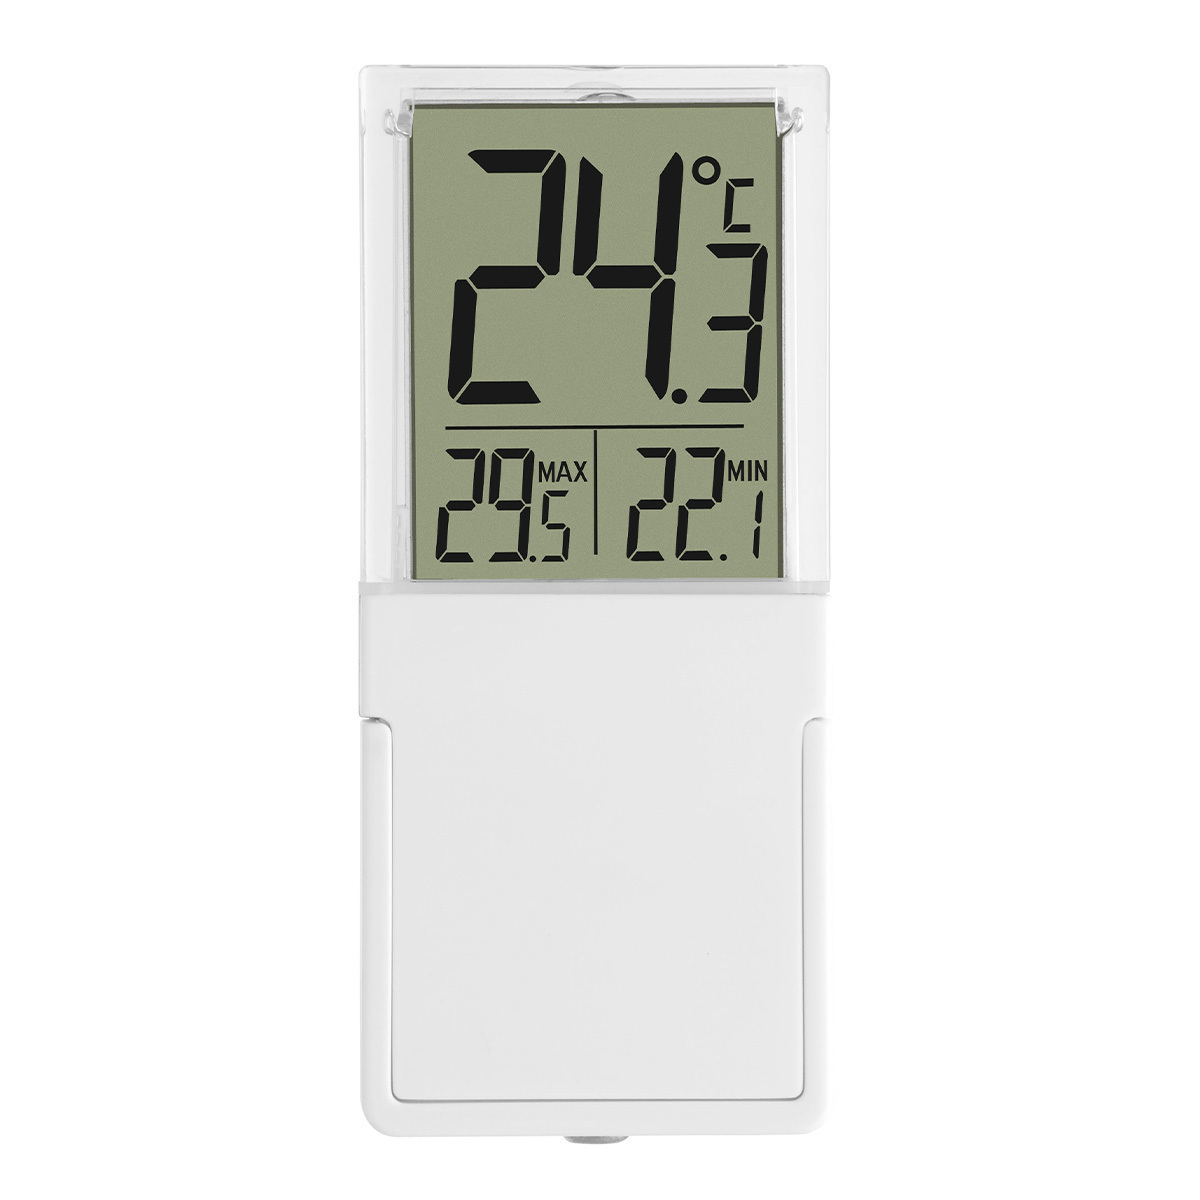 30-1030-digitales-fenster-innenthermometer-vista-1200x1200px.jpg